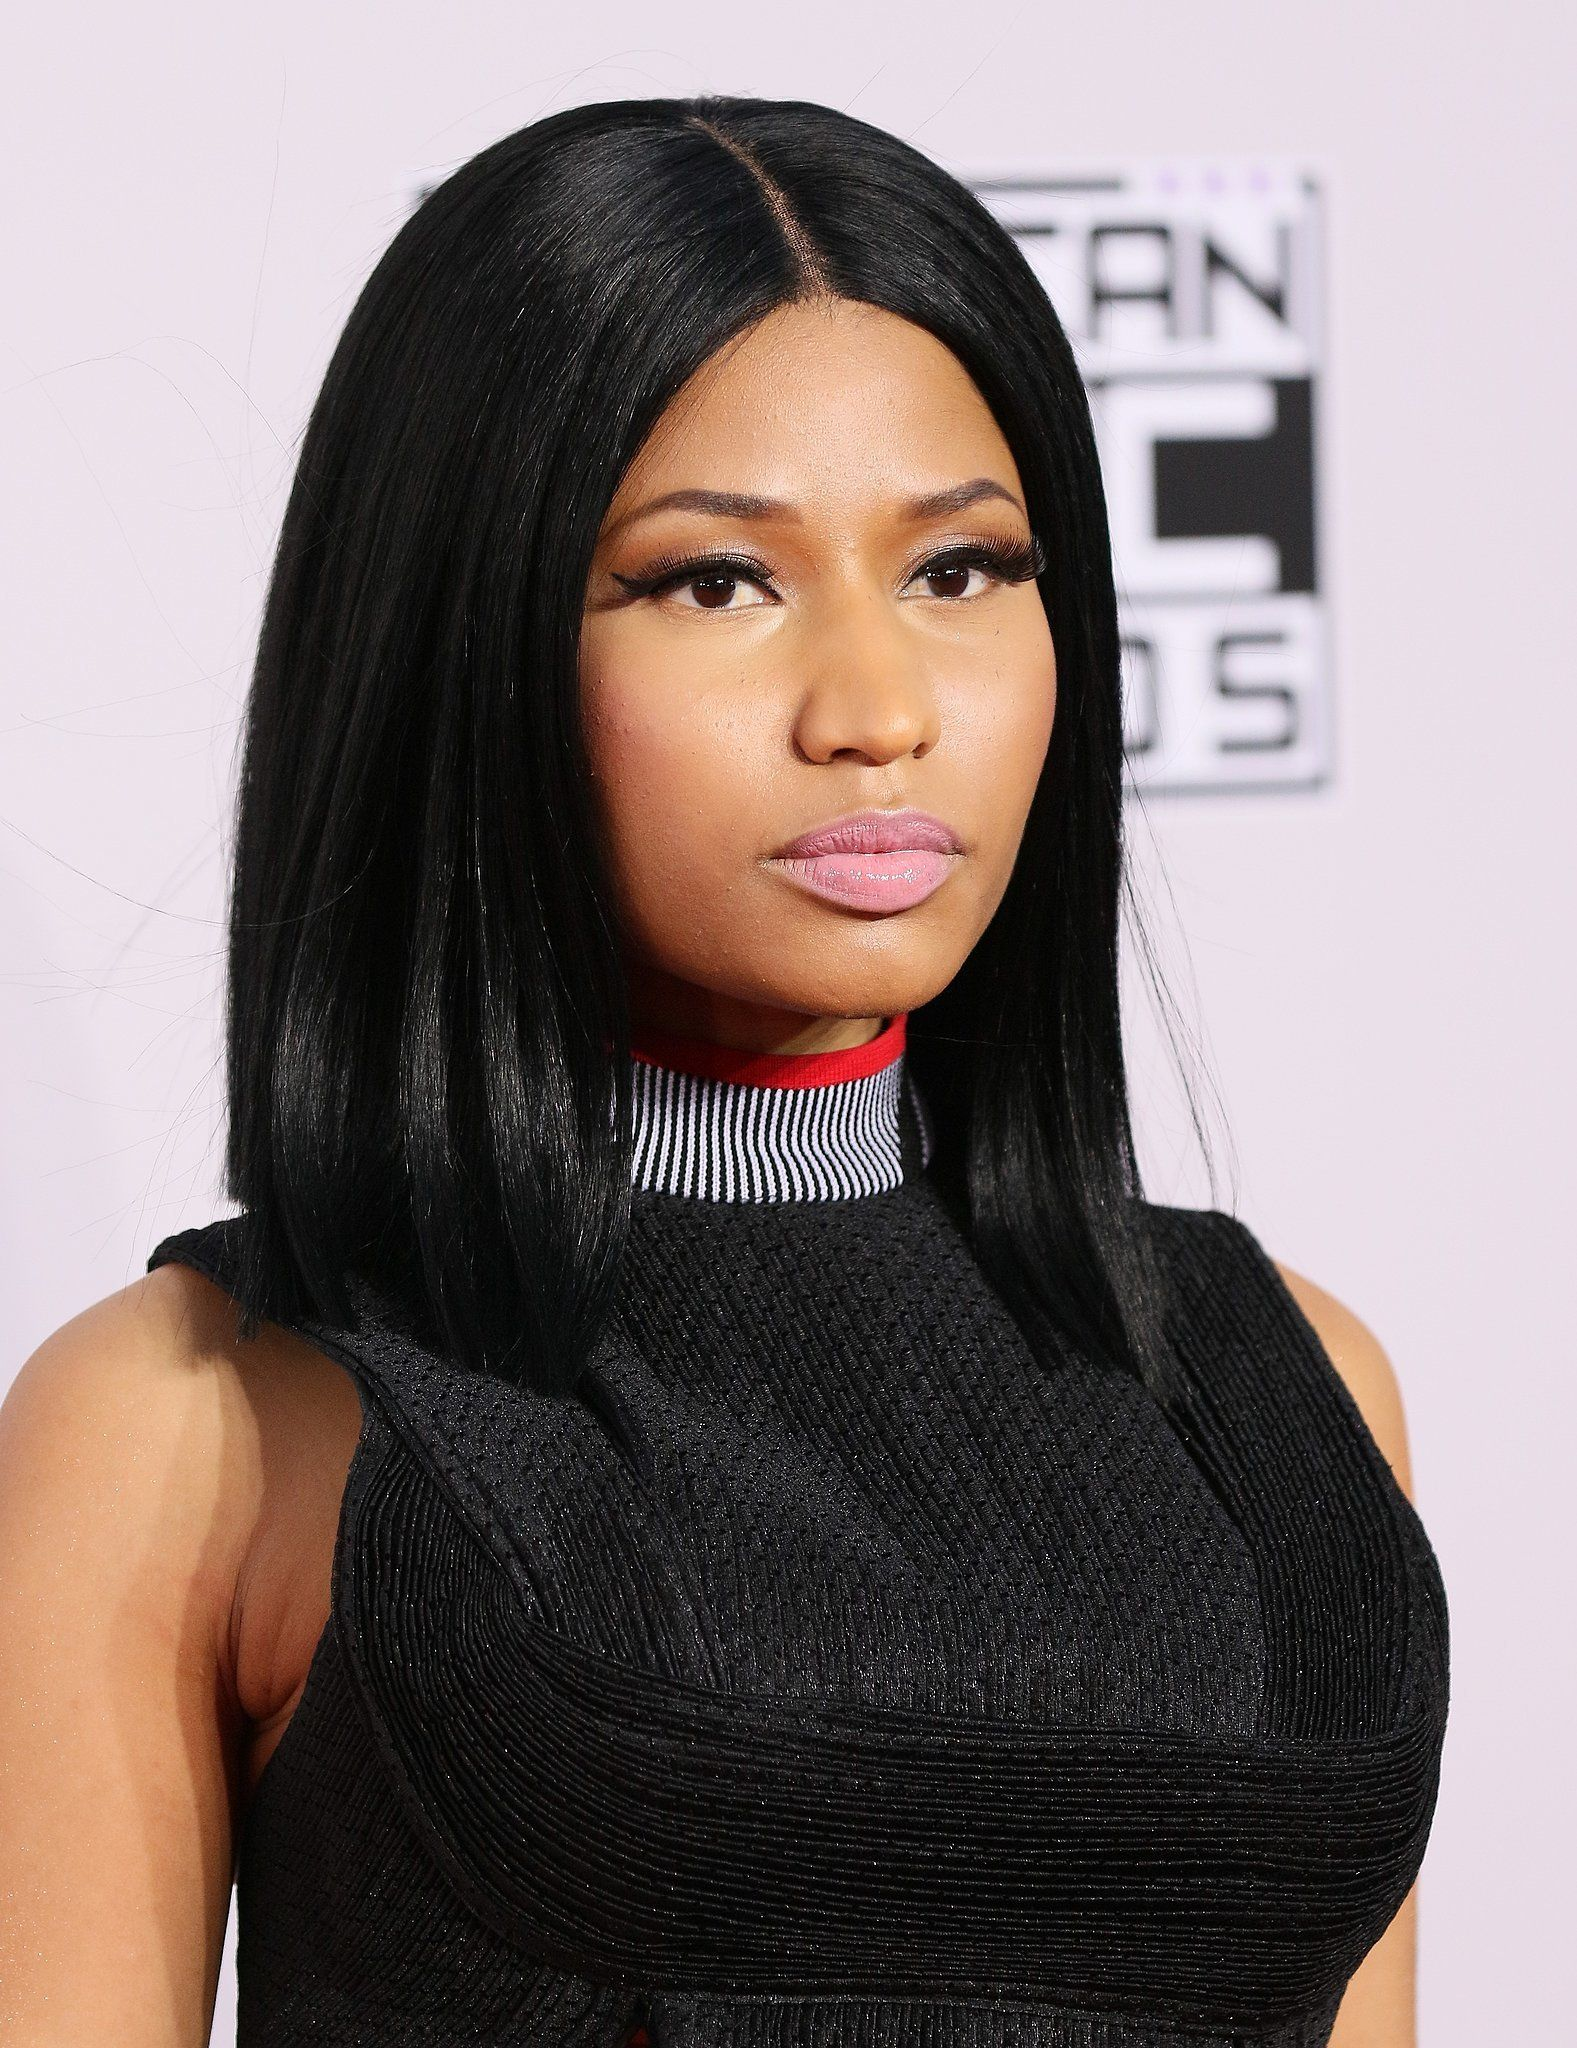 nicki minaj | next haircut!!! | nicki minaj hairstyles, hair